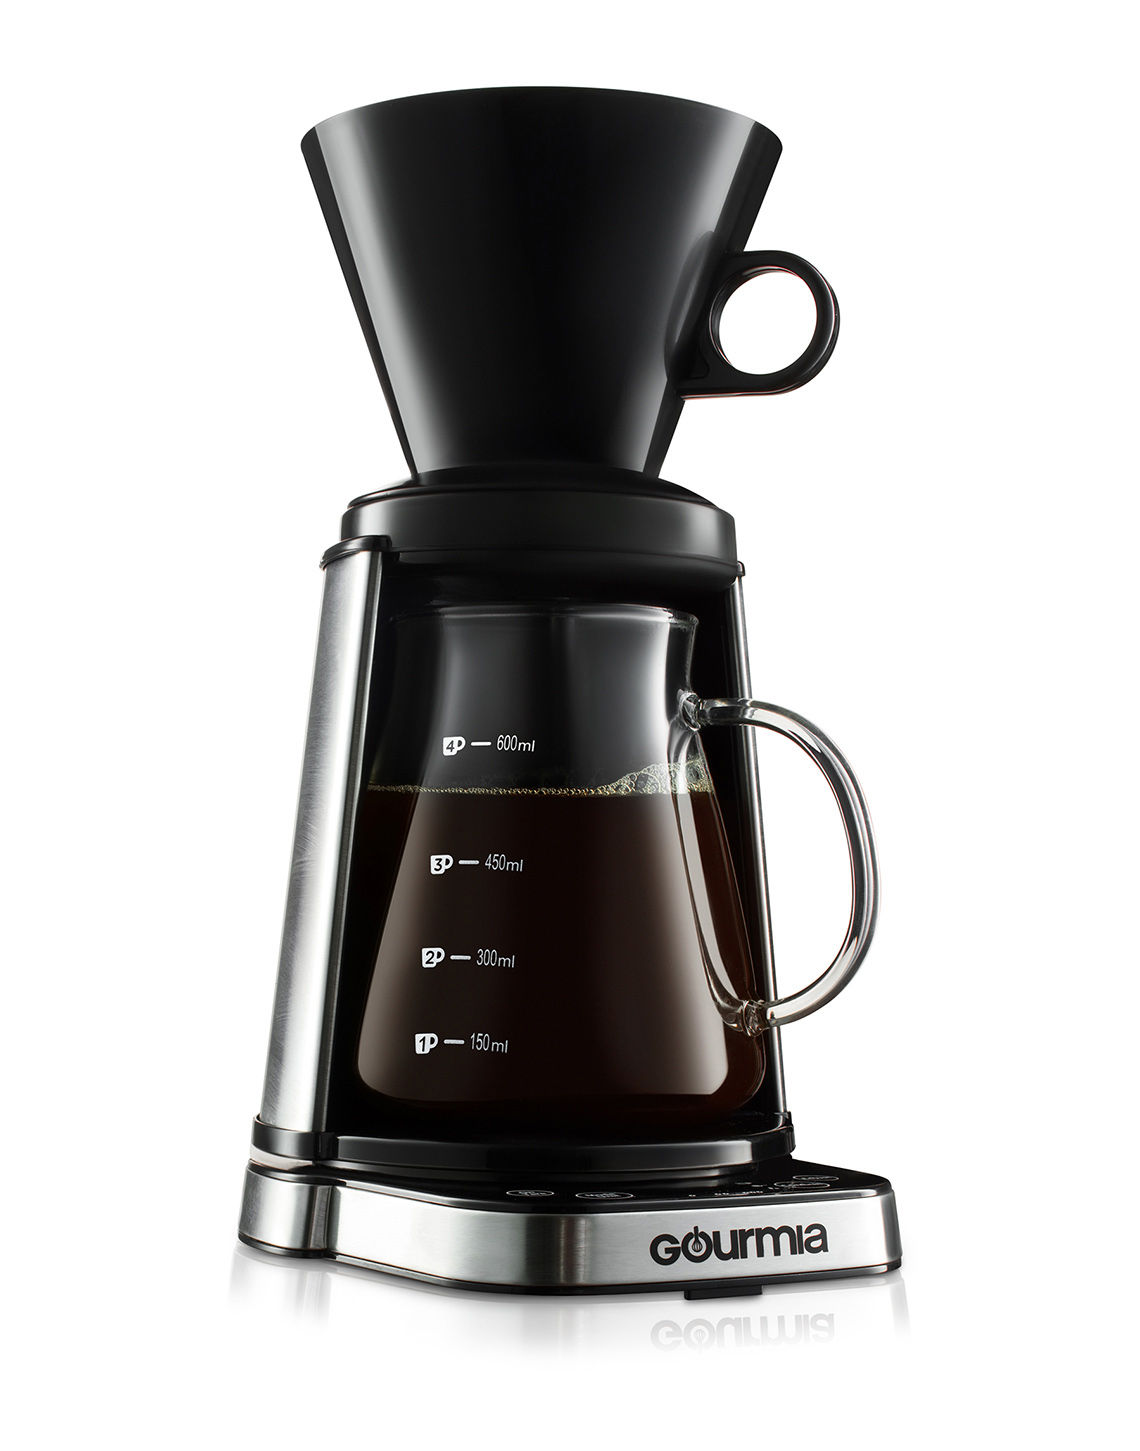 New-york-luxury-product-photographer-pour-over-coffe-maker-gourmia